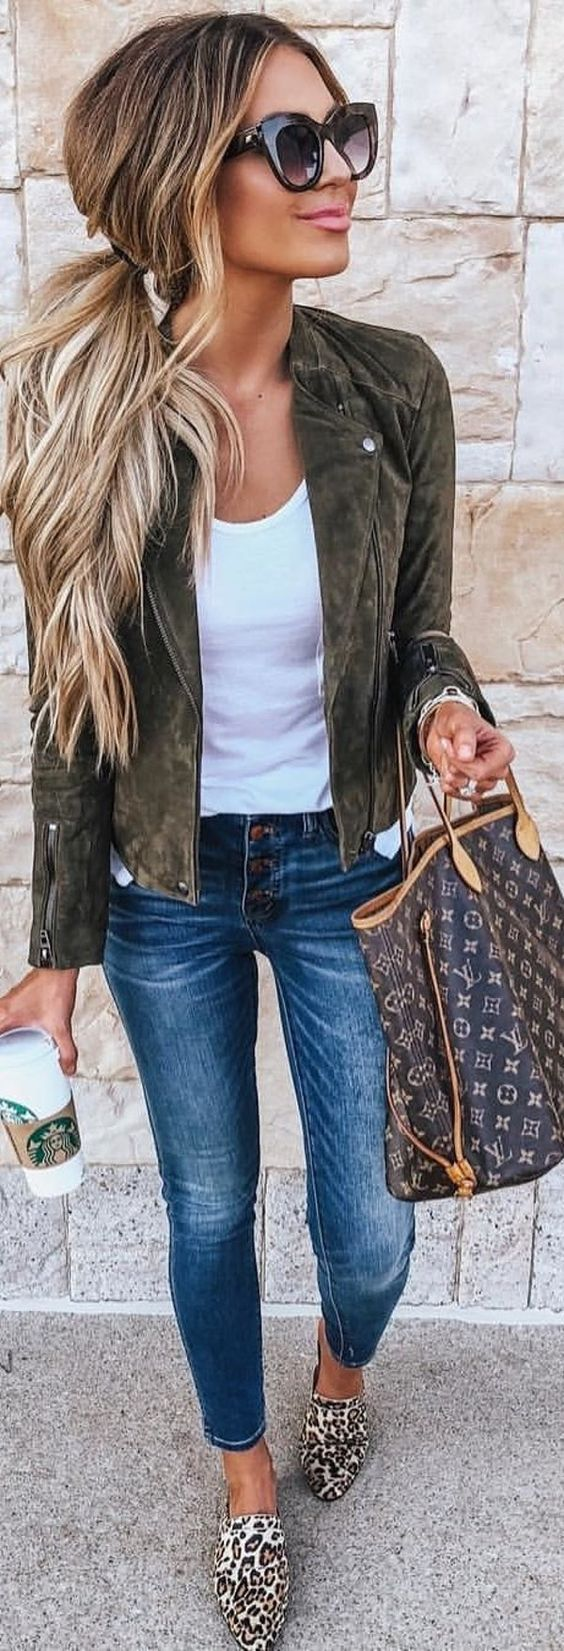 With these stylish ideas, you can go from the office to after-hours with ease. – Edgy Fashion Tips